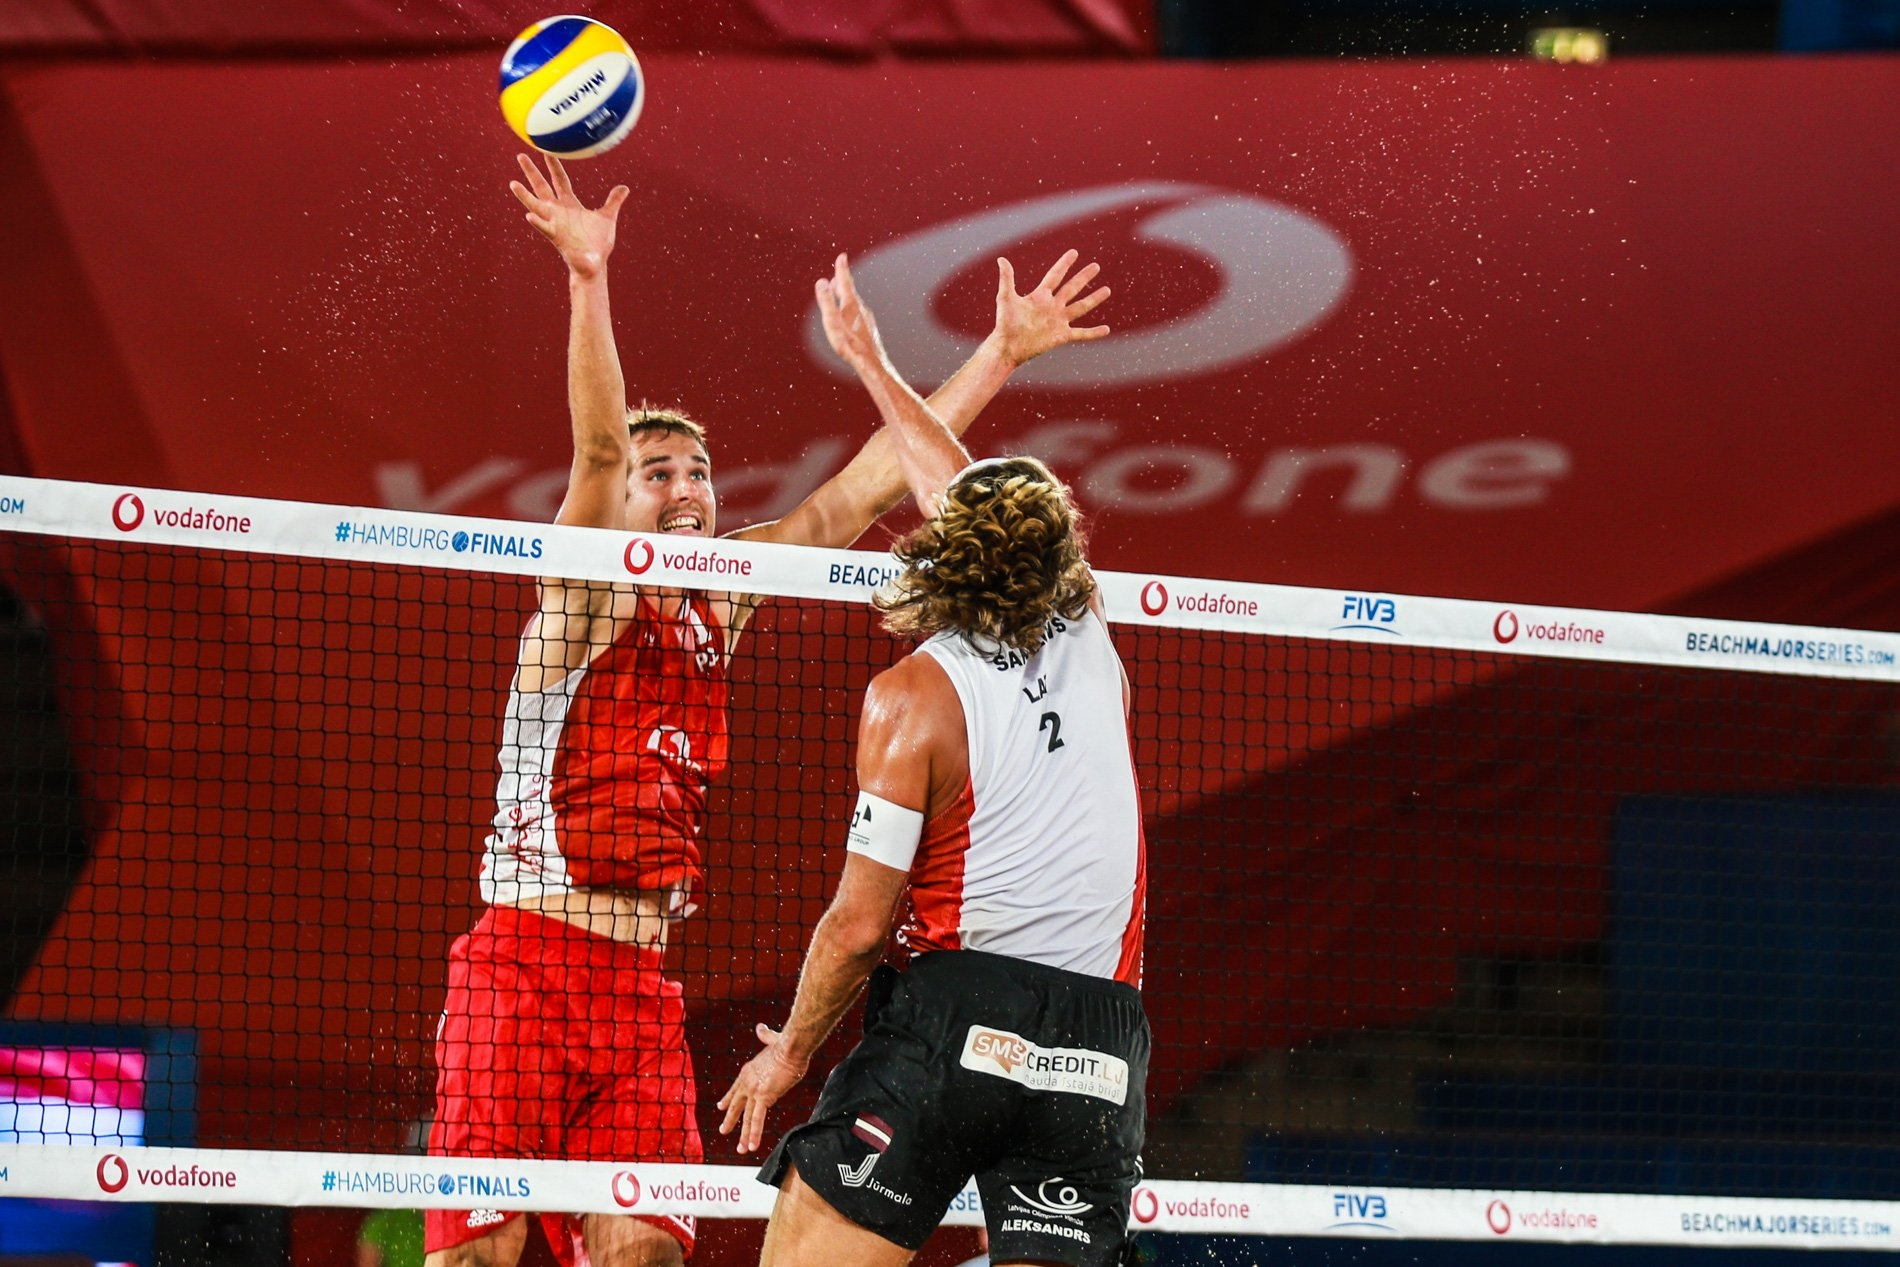 Kantor blocks Samoilovs at the Red Bull Beach Arena